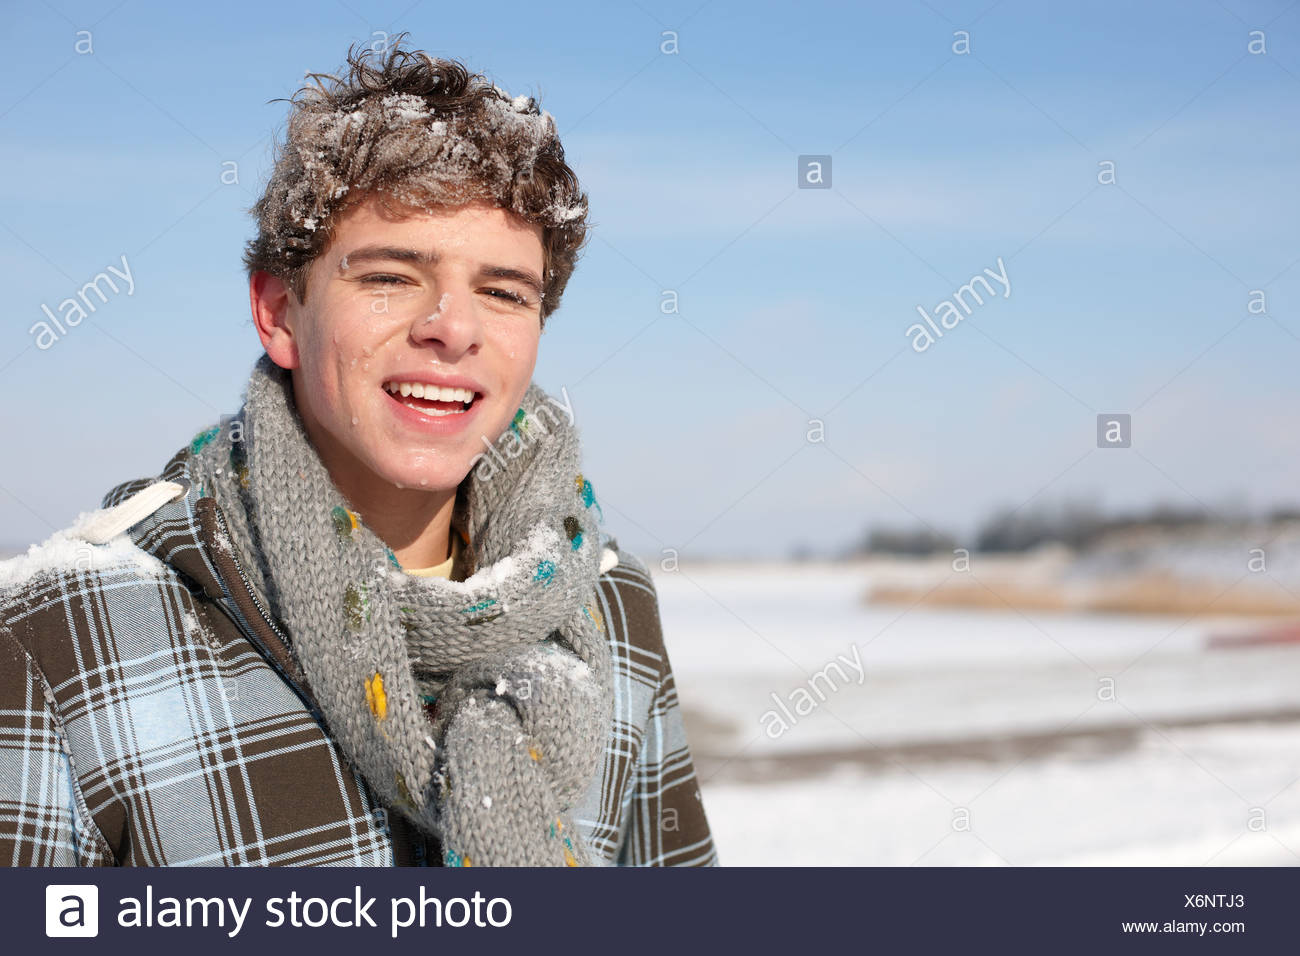 Portrait of teenage boy smiling after being hit with a snowball - Stock Image